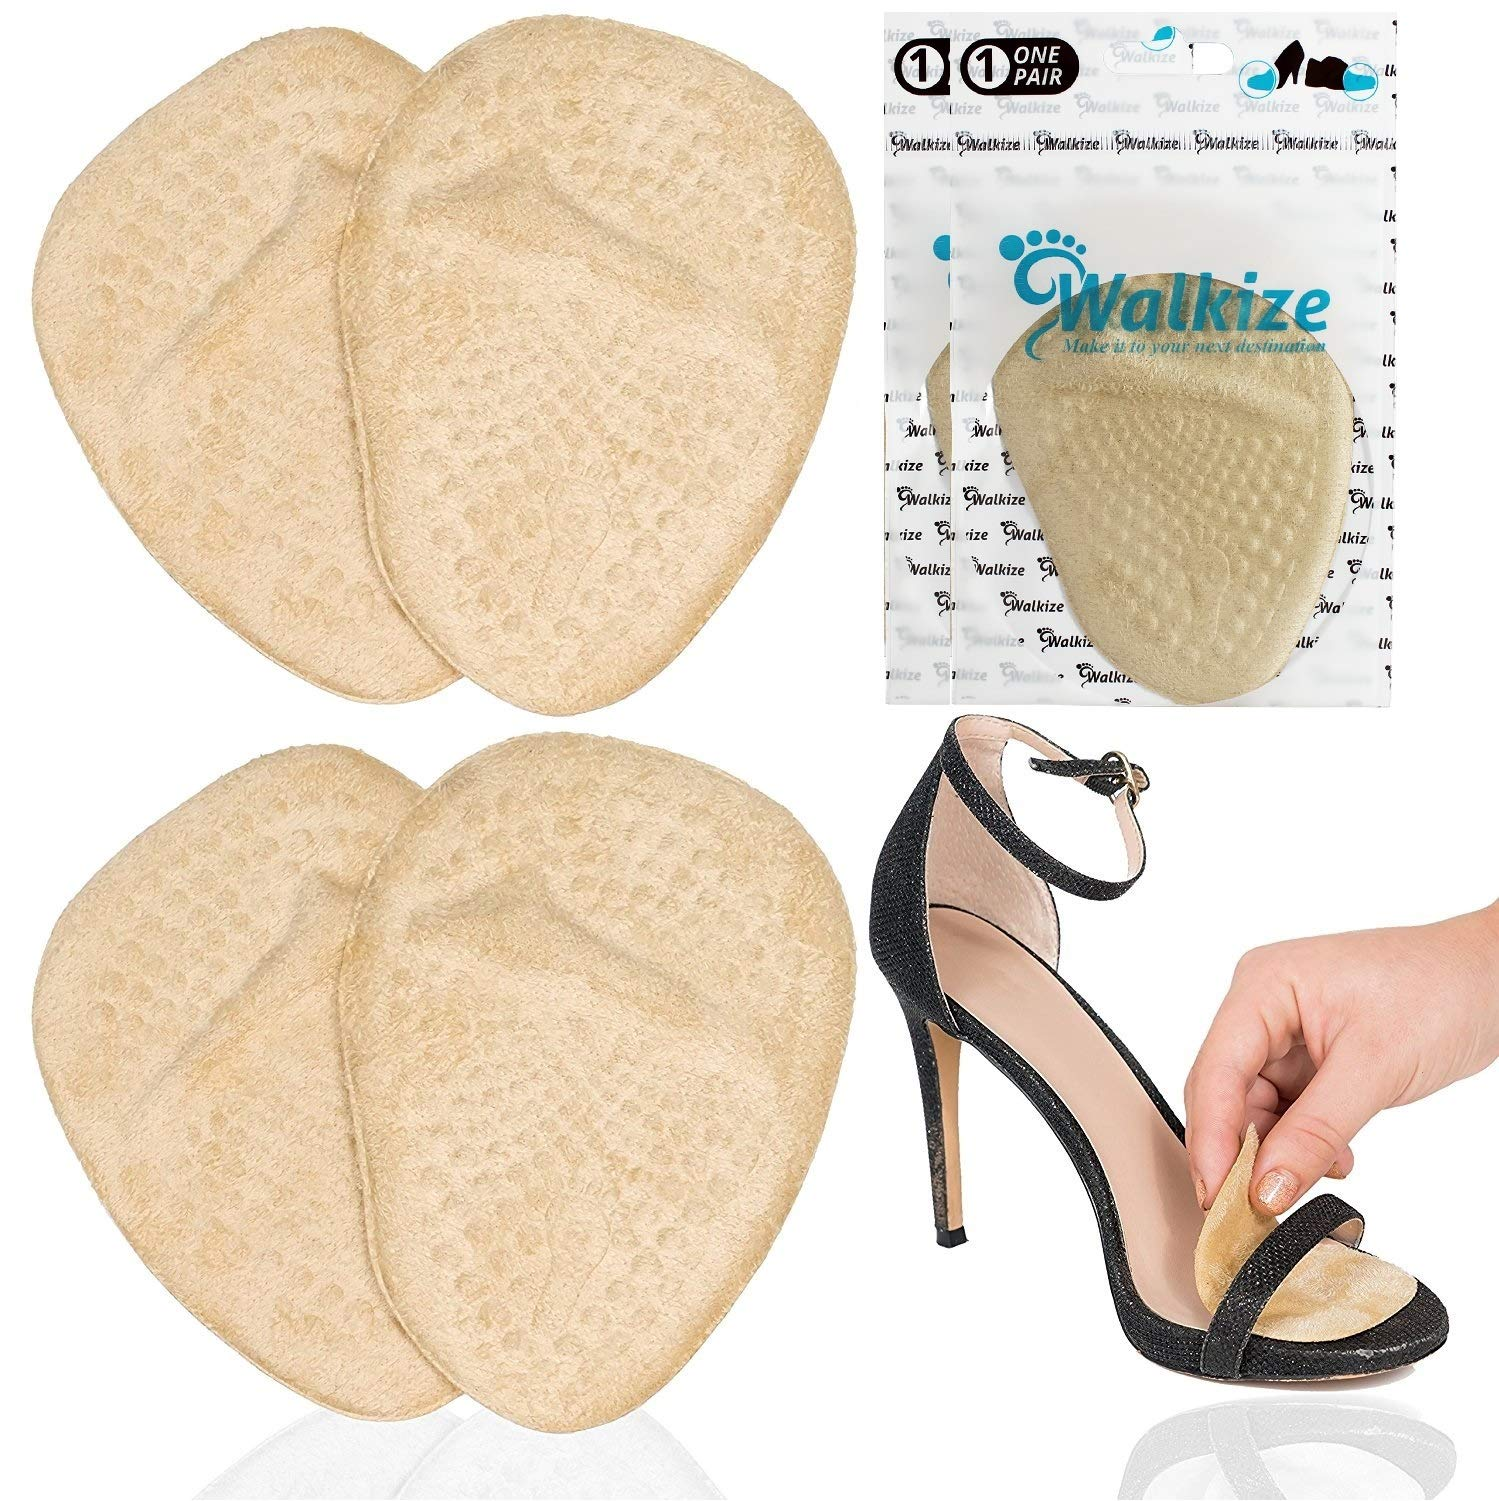 Metatarsal Pads | Metatarsal Pads for Women | Ball of Foot Cushions (2 Pairs Foot Pads) All Day Pain Relief and Comfort One Size Fits Shoe Inserts for Women by Walkize